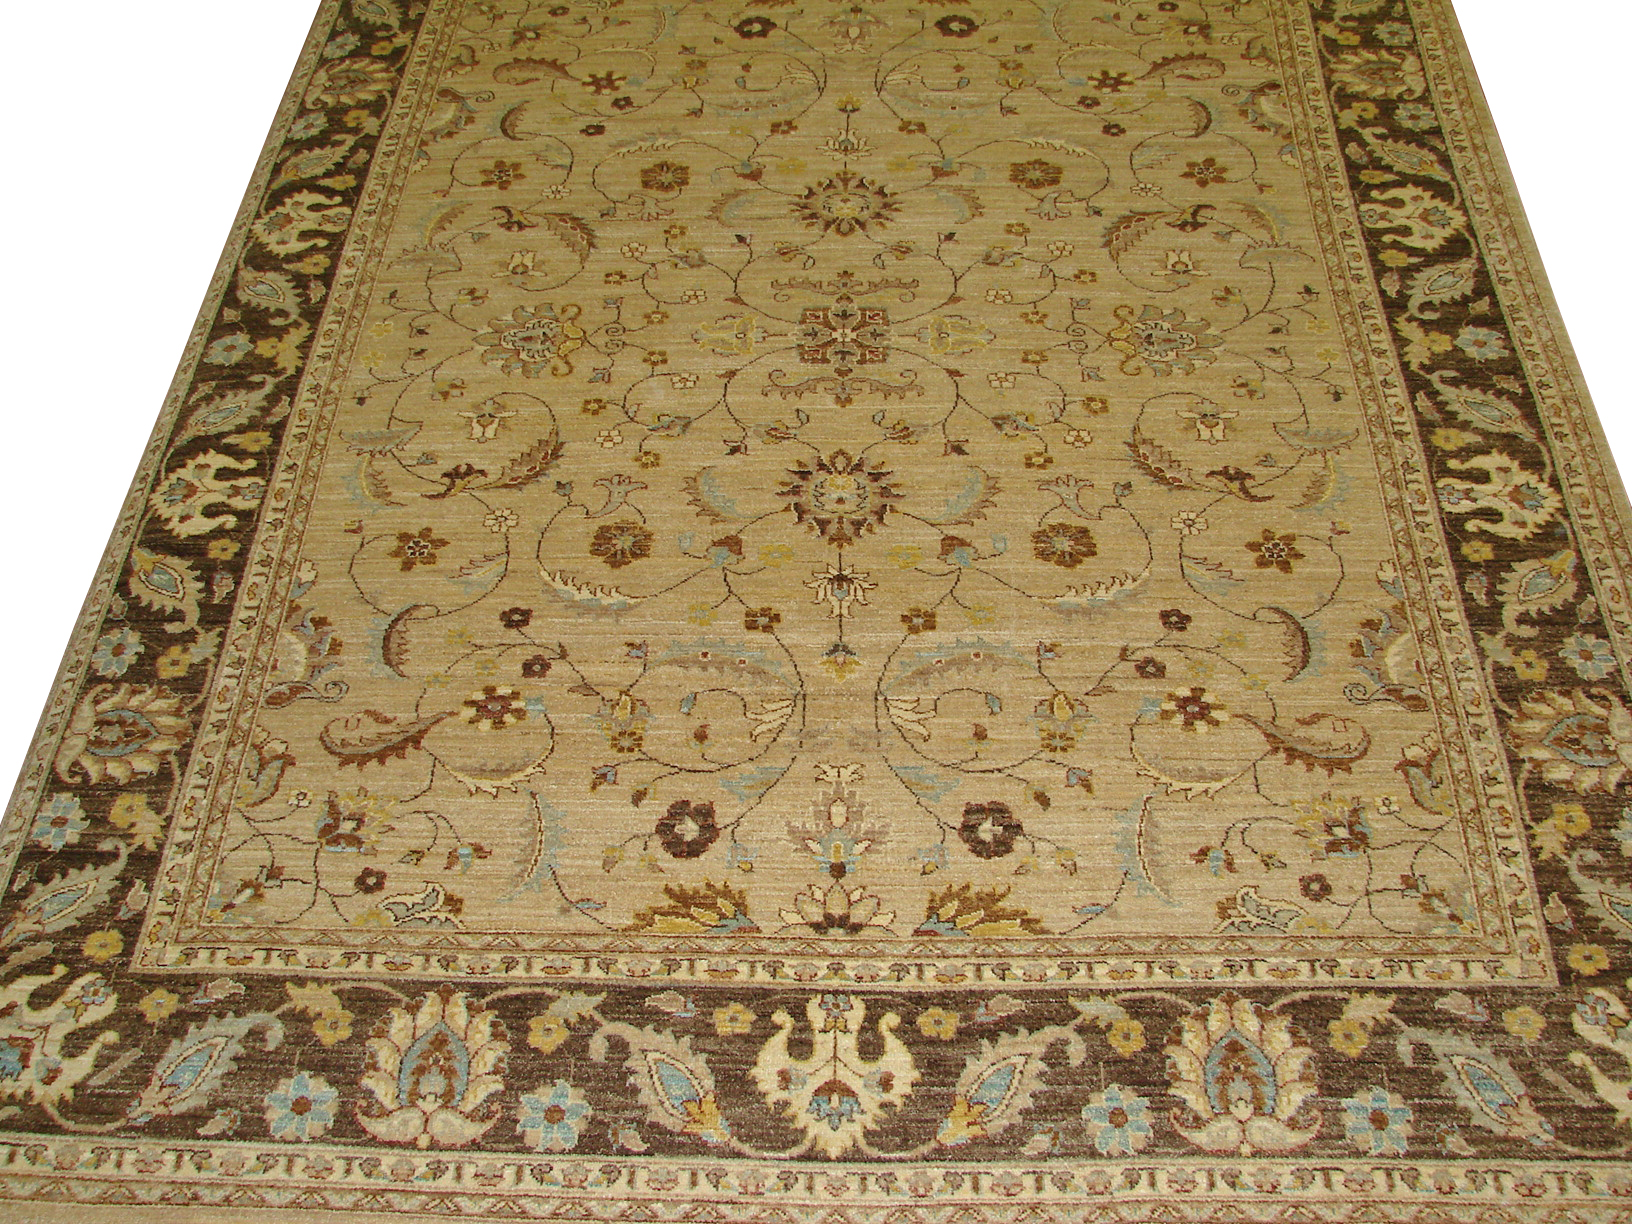 8x10 Peshawar Hand Knotted Wool Area Rug - MR8970